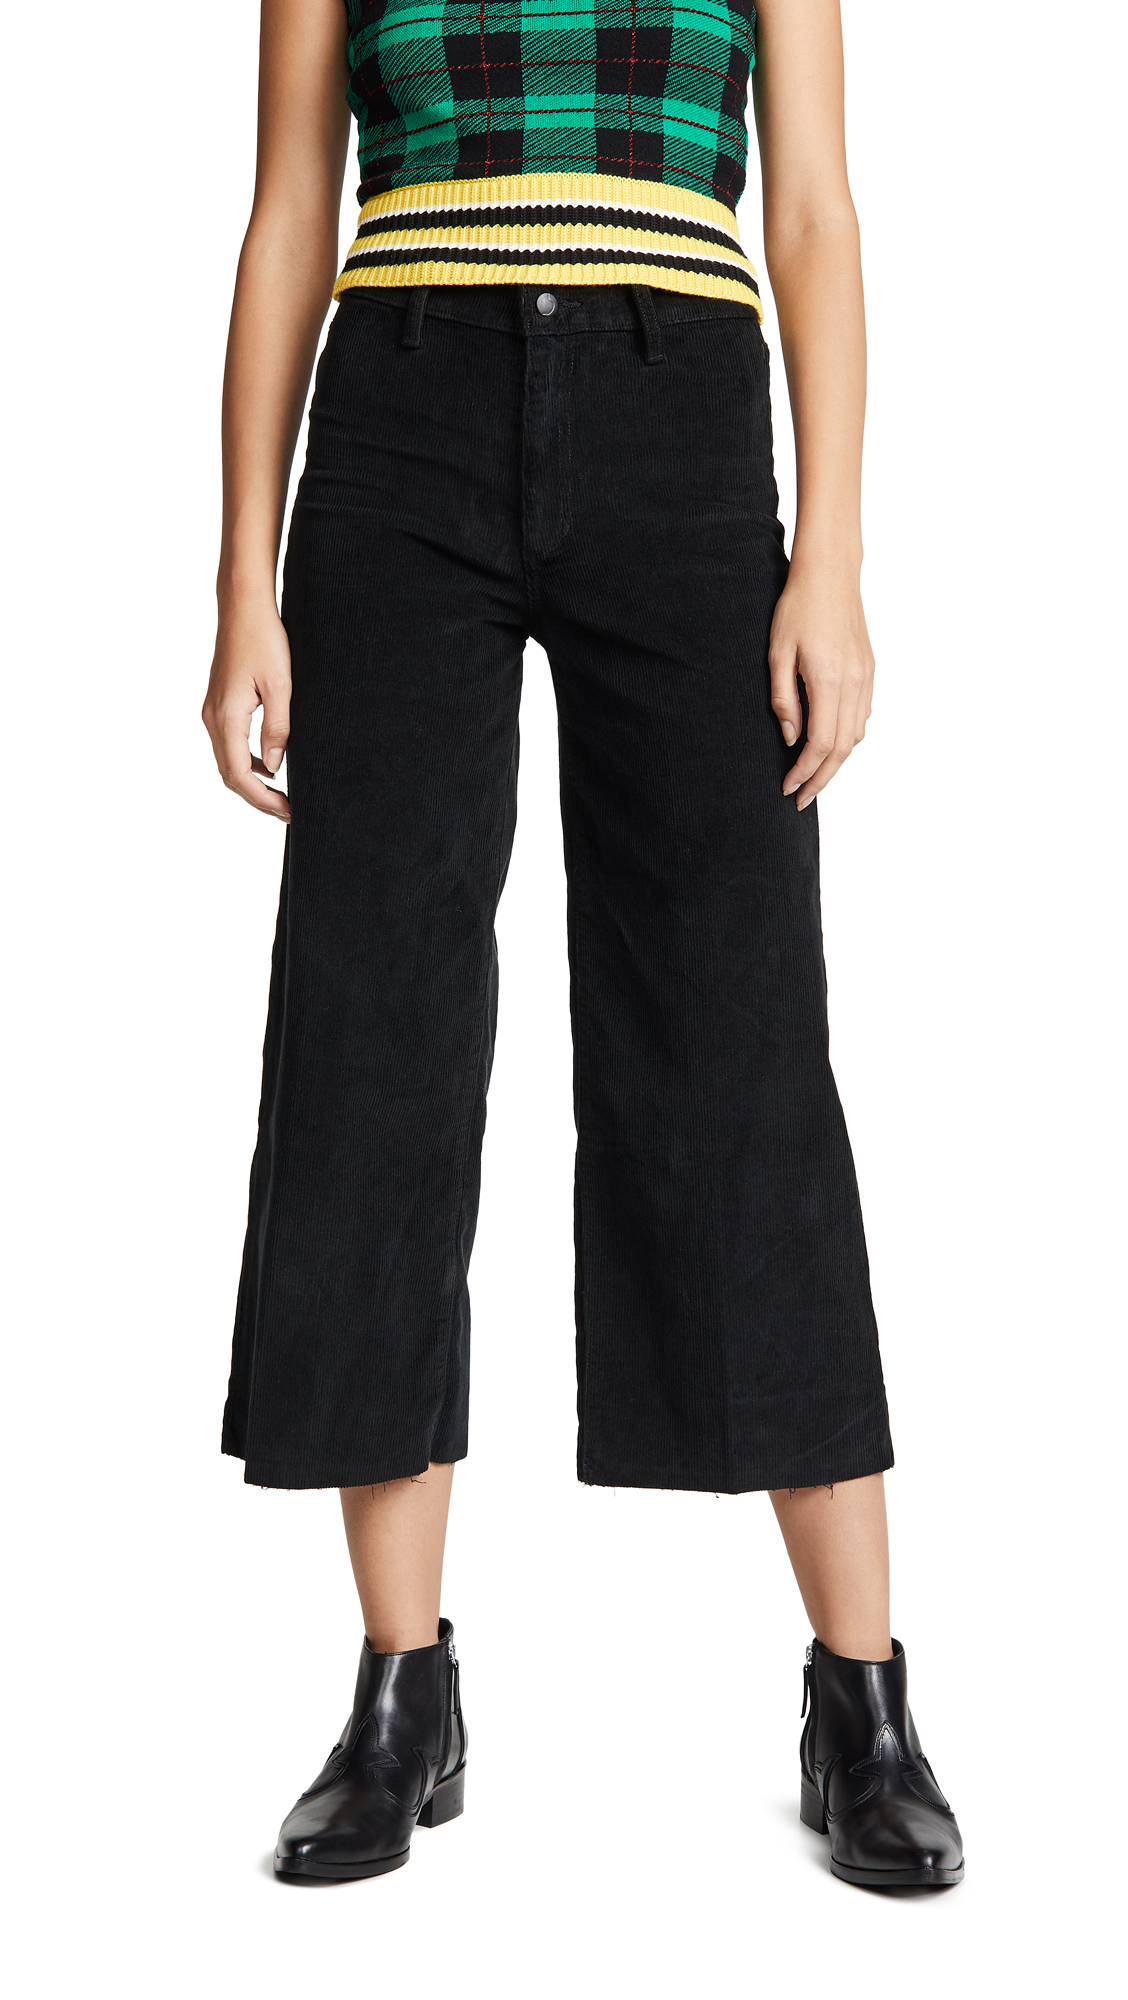 Joes Jeans The Crop Wide Leg Cords - Black